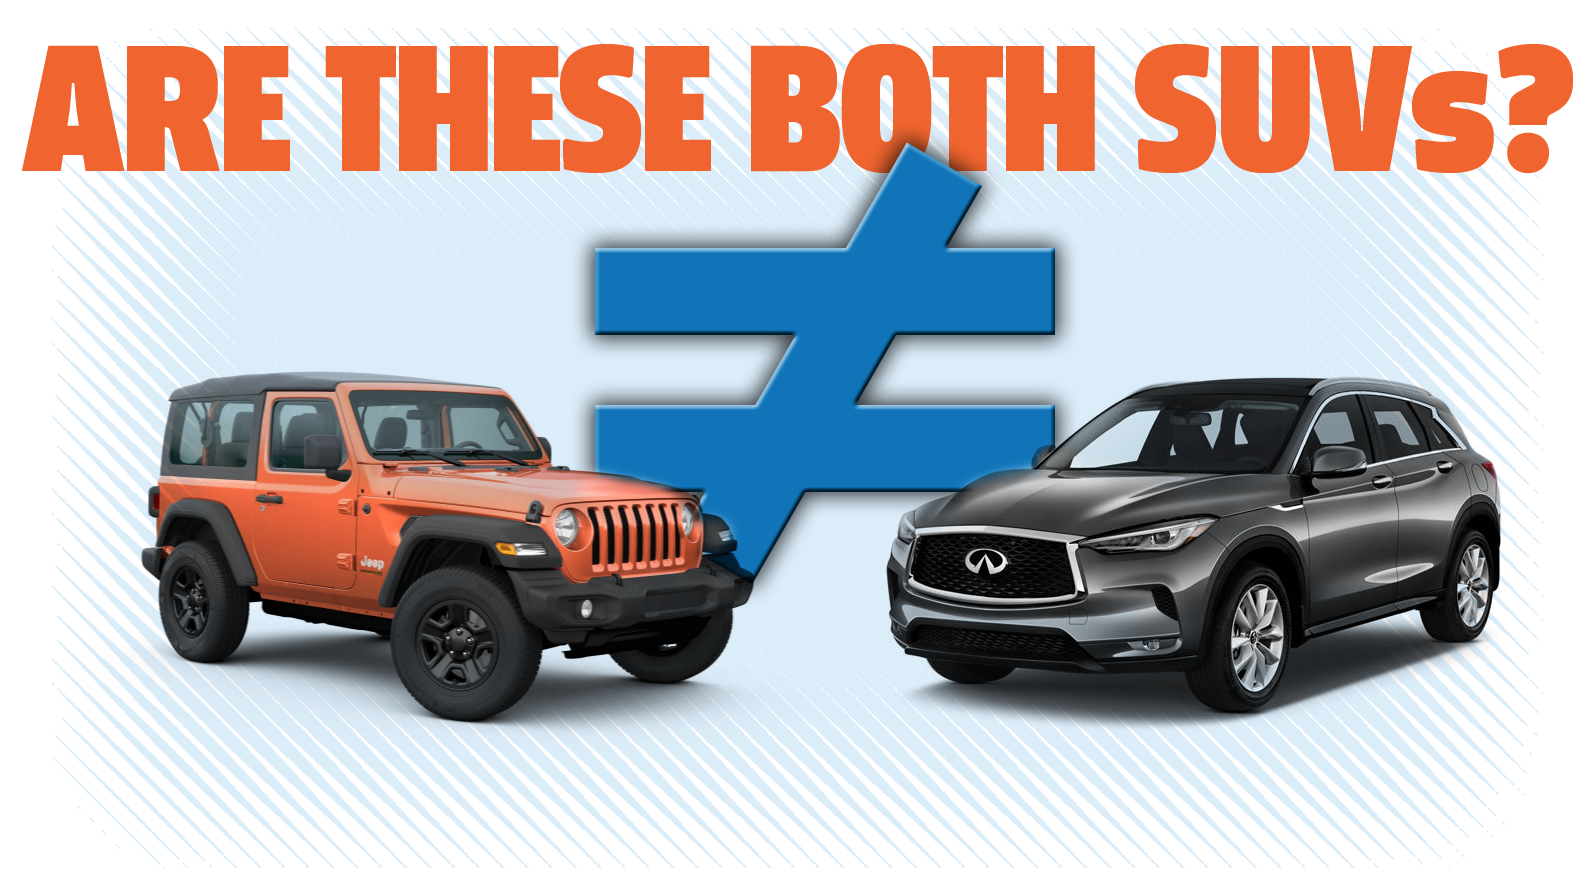 We Need A New Name For Vehicles Like The Wrangler And Bronco Because SUV Doesn't Work Anymore